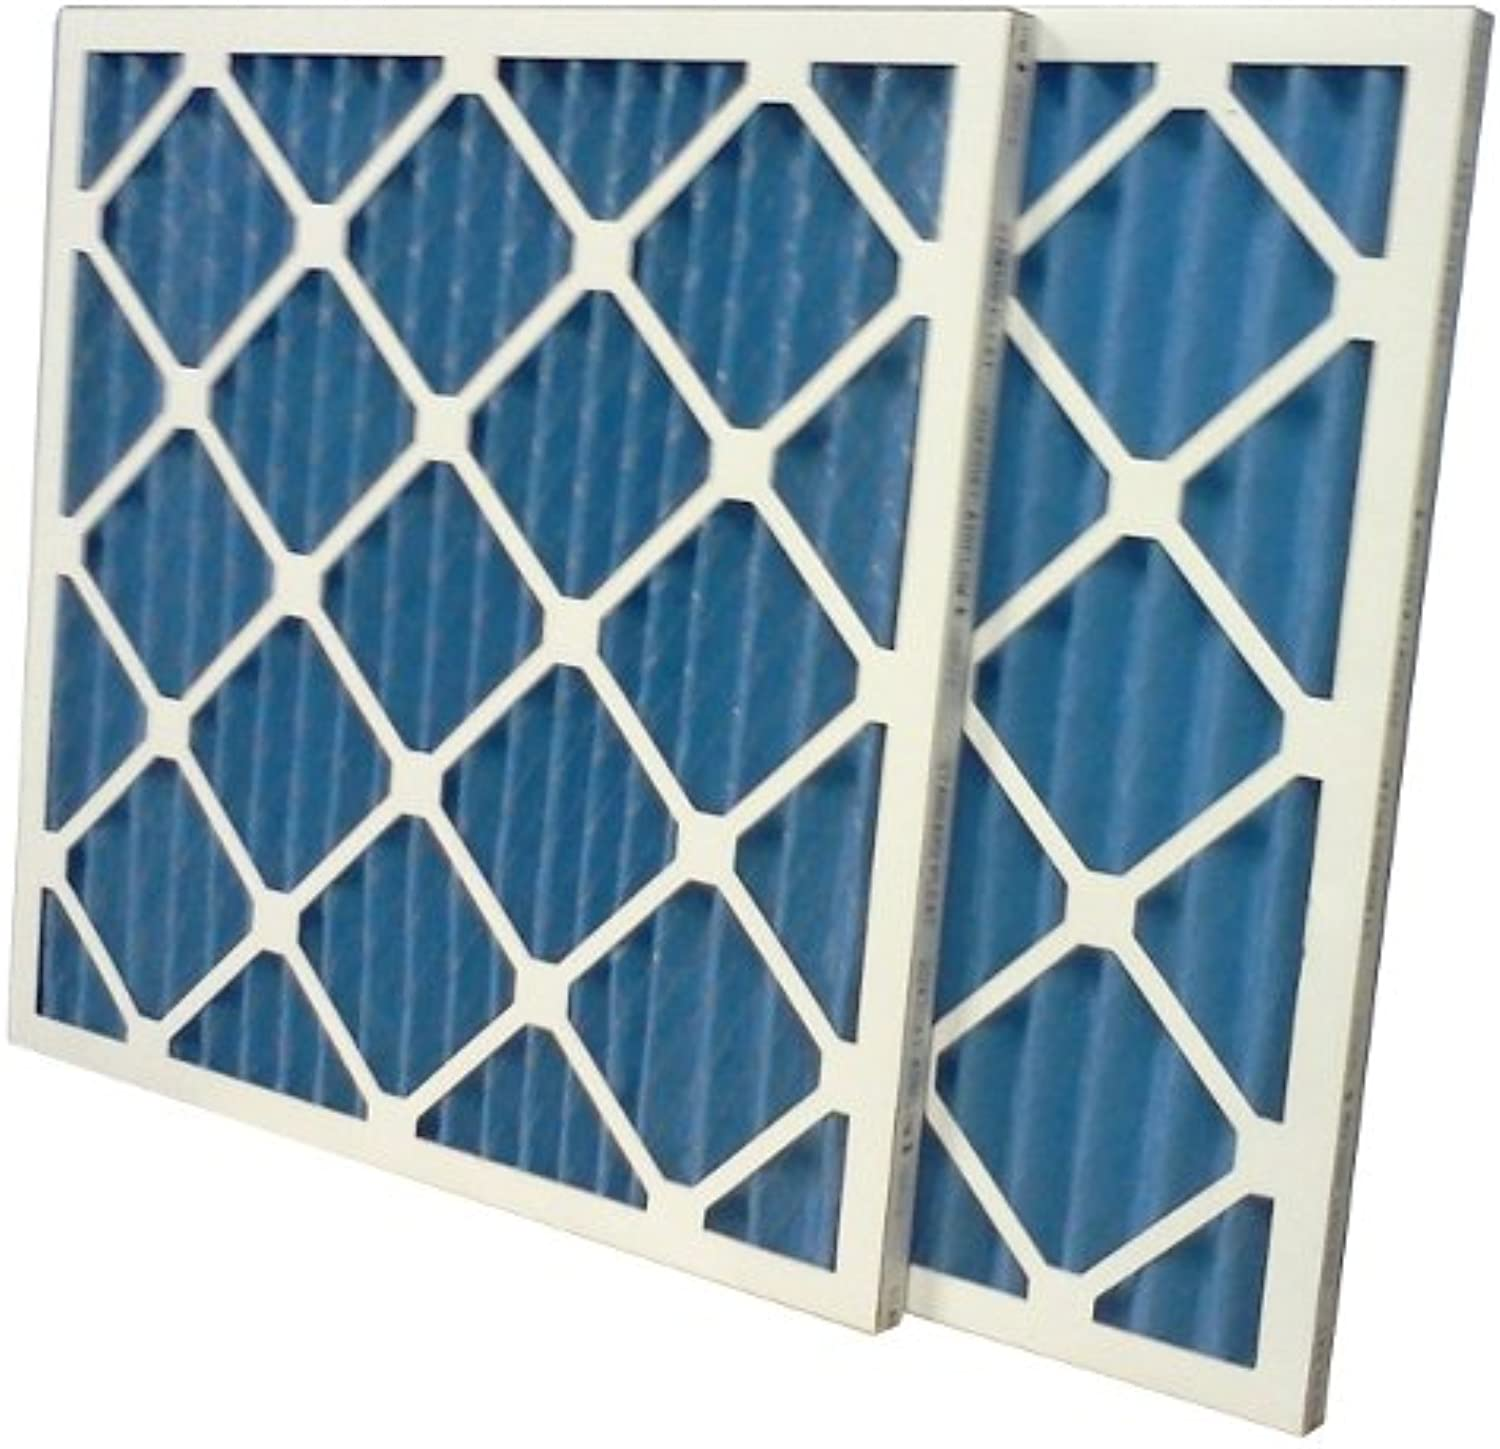 US Home Filter SC40-24X24X1 MERV 8 Pleated Air Filter (12 Pack), 24  x 24  x 1